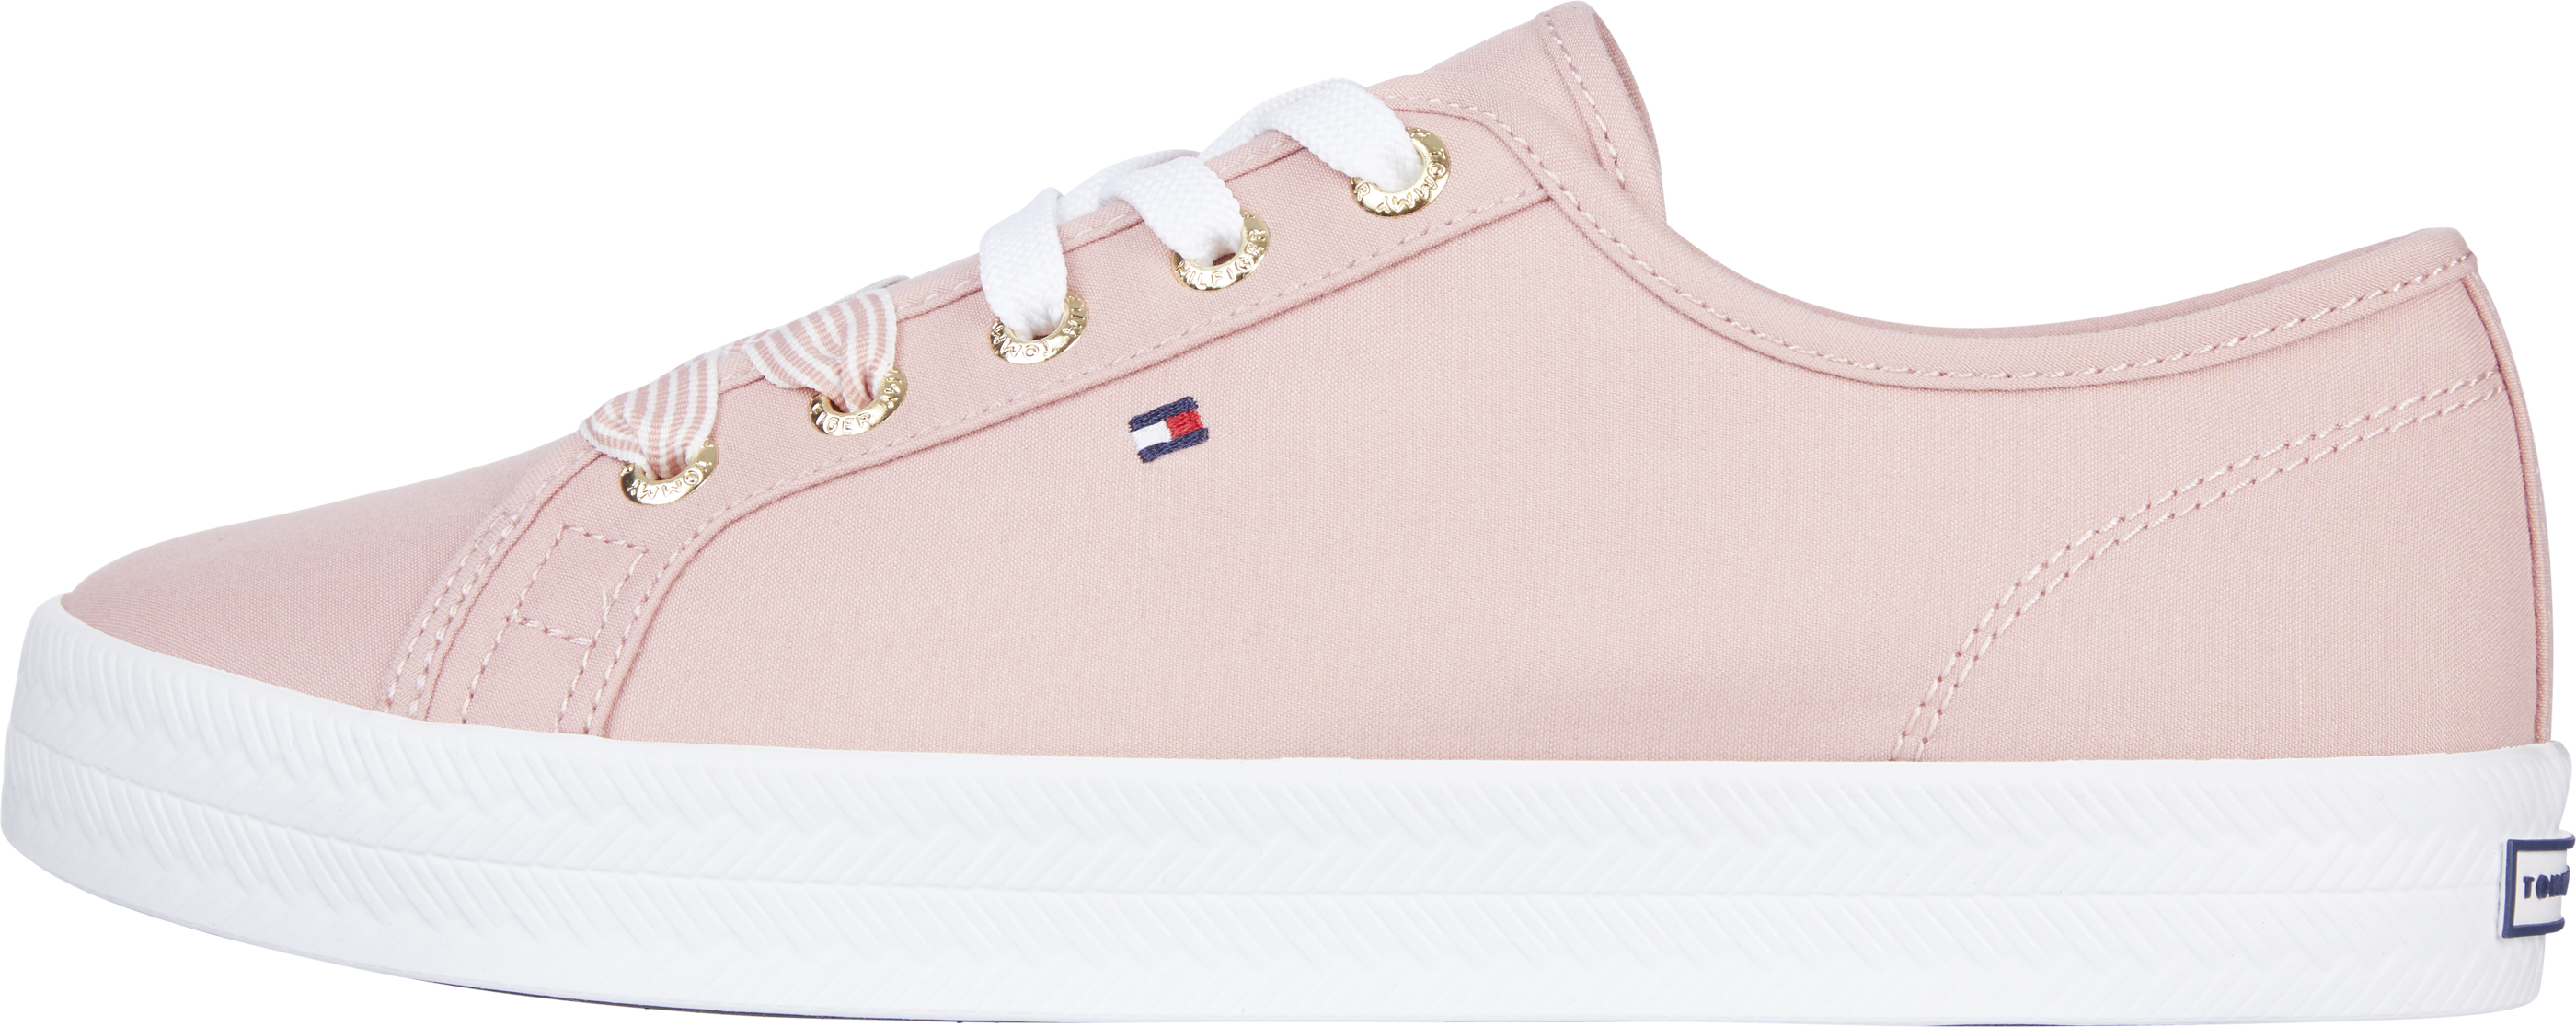 Tommy Hilfiger Sneaker Essential Nautical